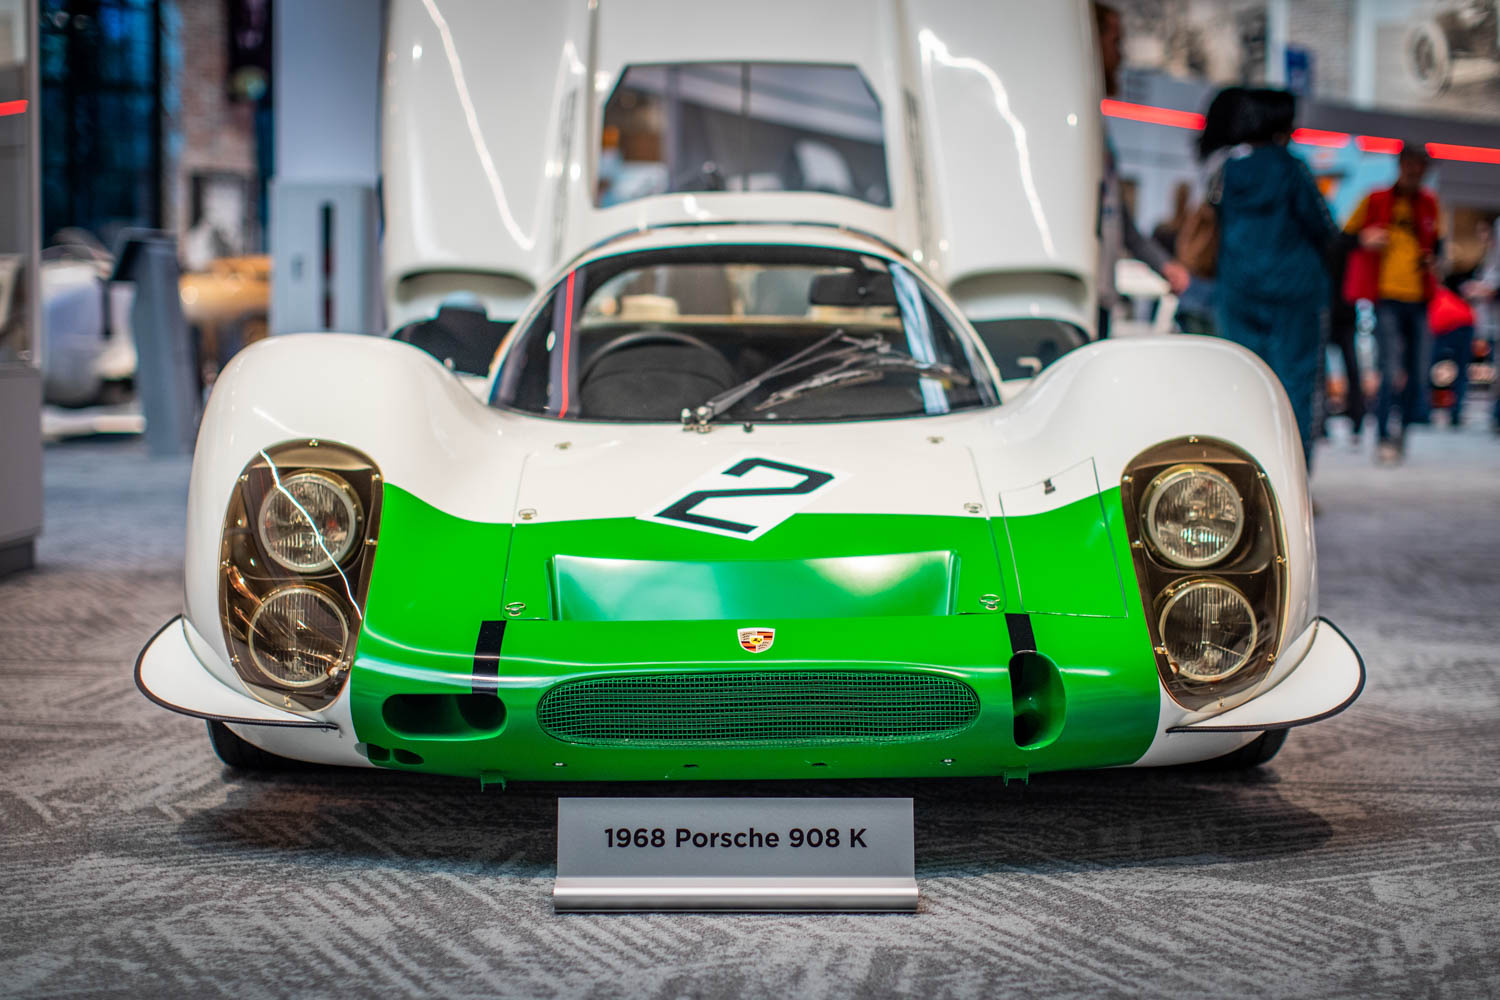 The museum's 1968 Porsche 908K, driven by Jo Siffert, is the subject of a famous photo of Siffert going airborne at the Nurburgring's Flugplatz during the '68 1000-km race.